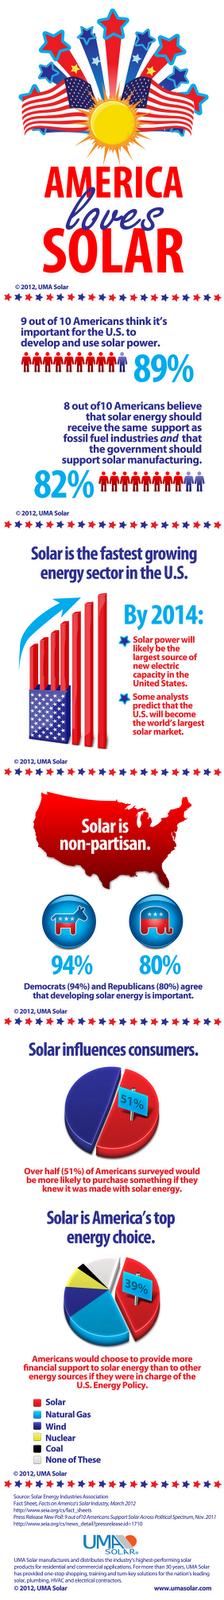 Infographic displaying 6 surprising facts on America's love affair with solar power.